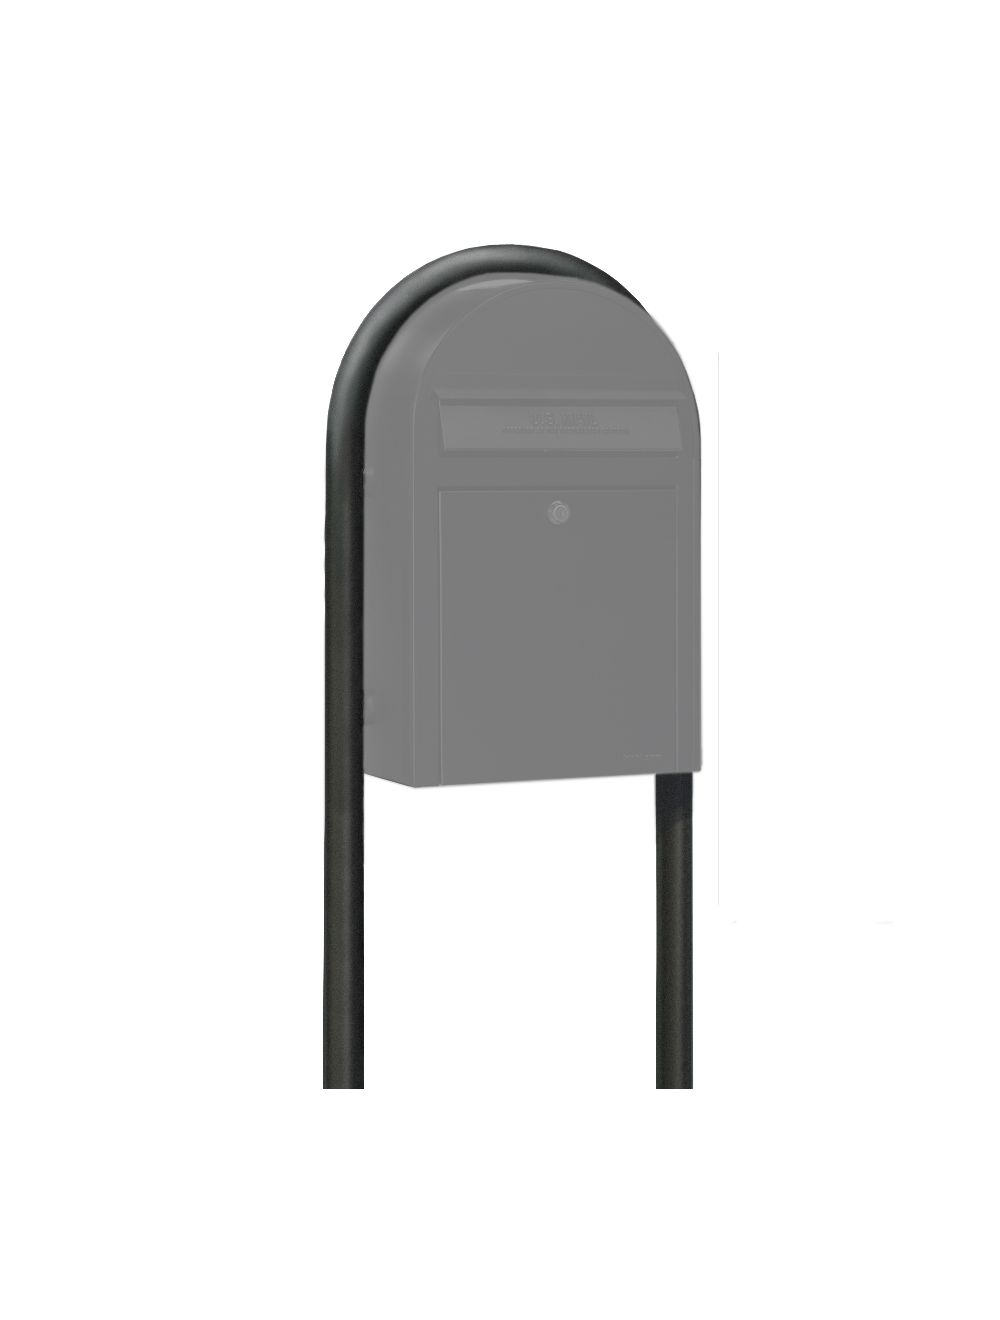 USPS Bobi Structured Black Round Mailbox Post